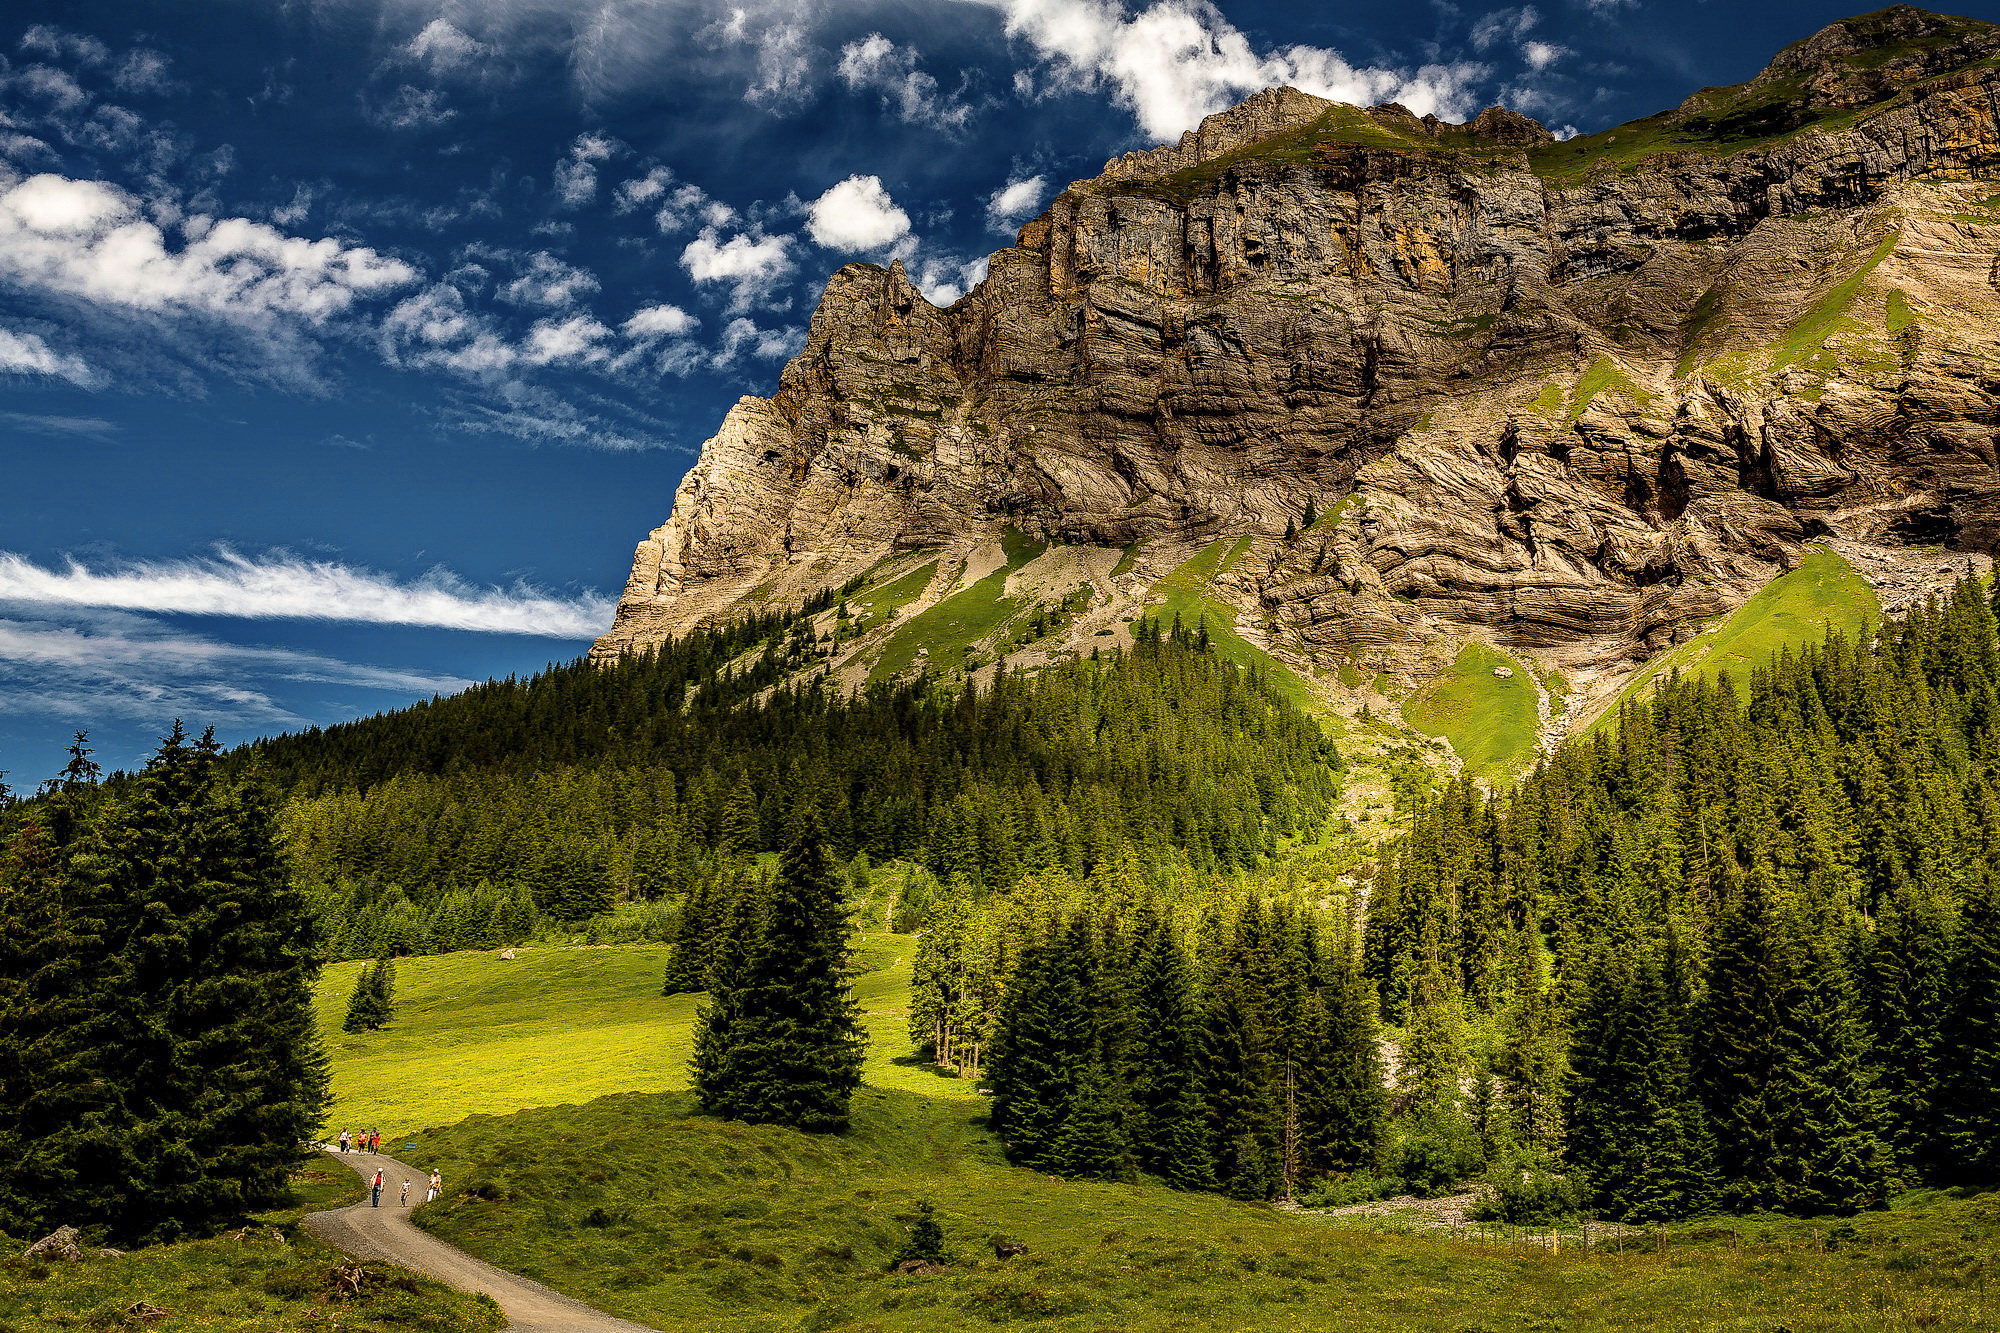 The Alps 2014-Switzerland-Kandersteg 1